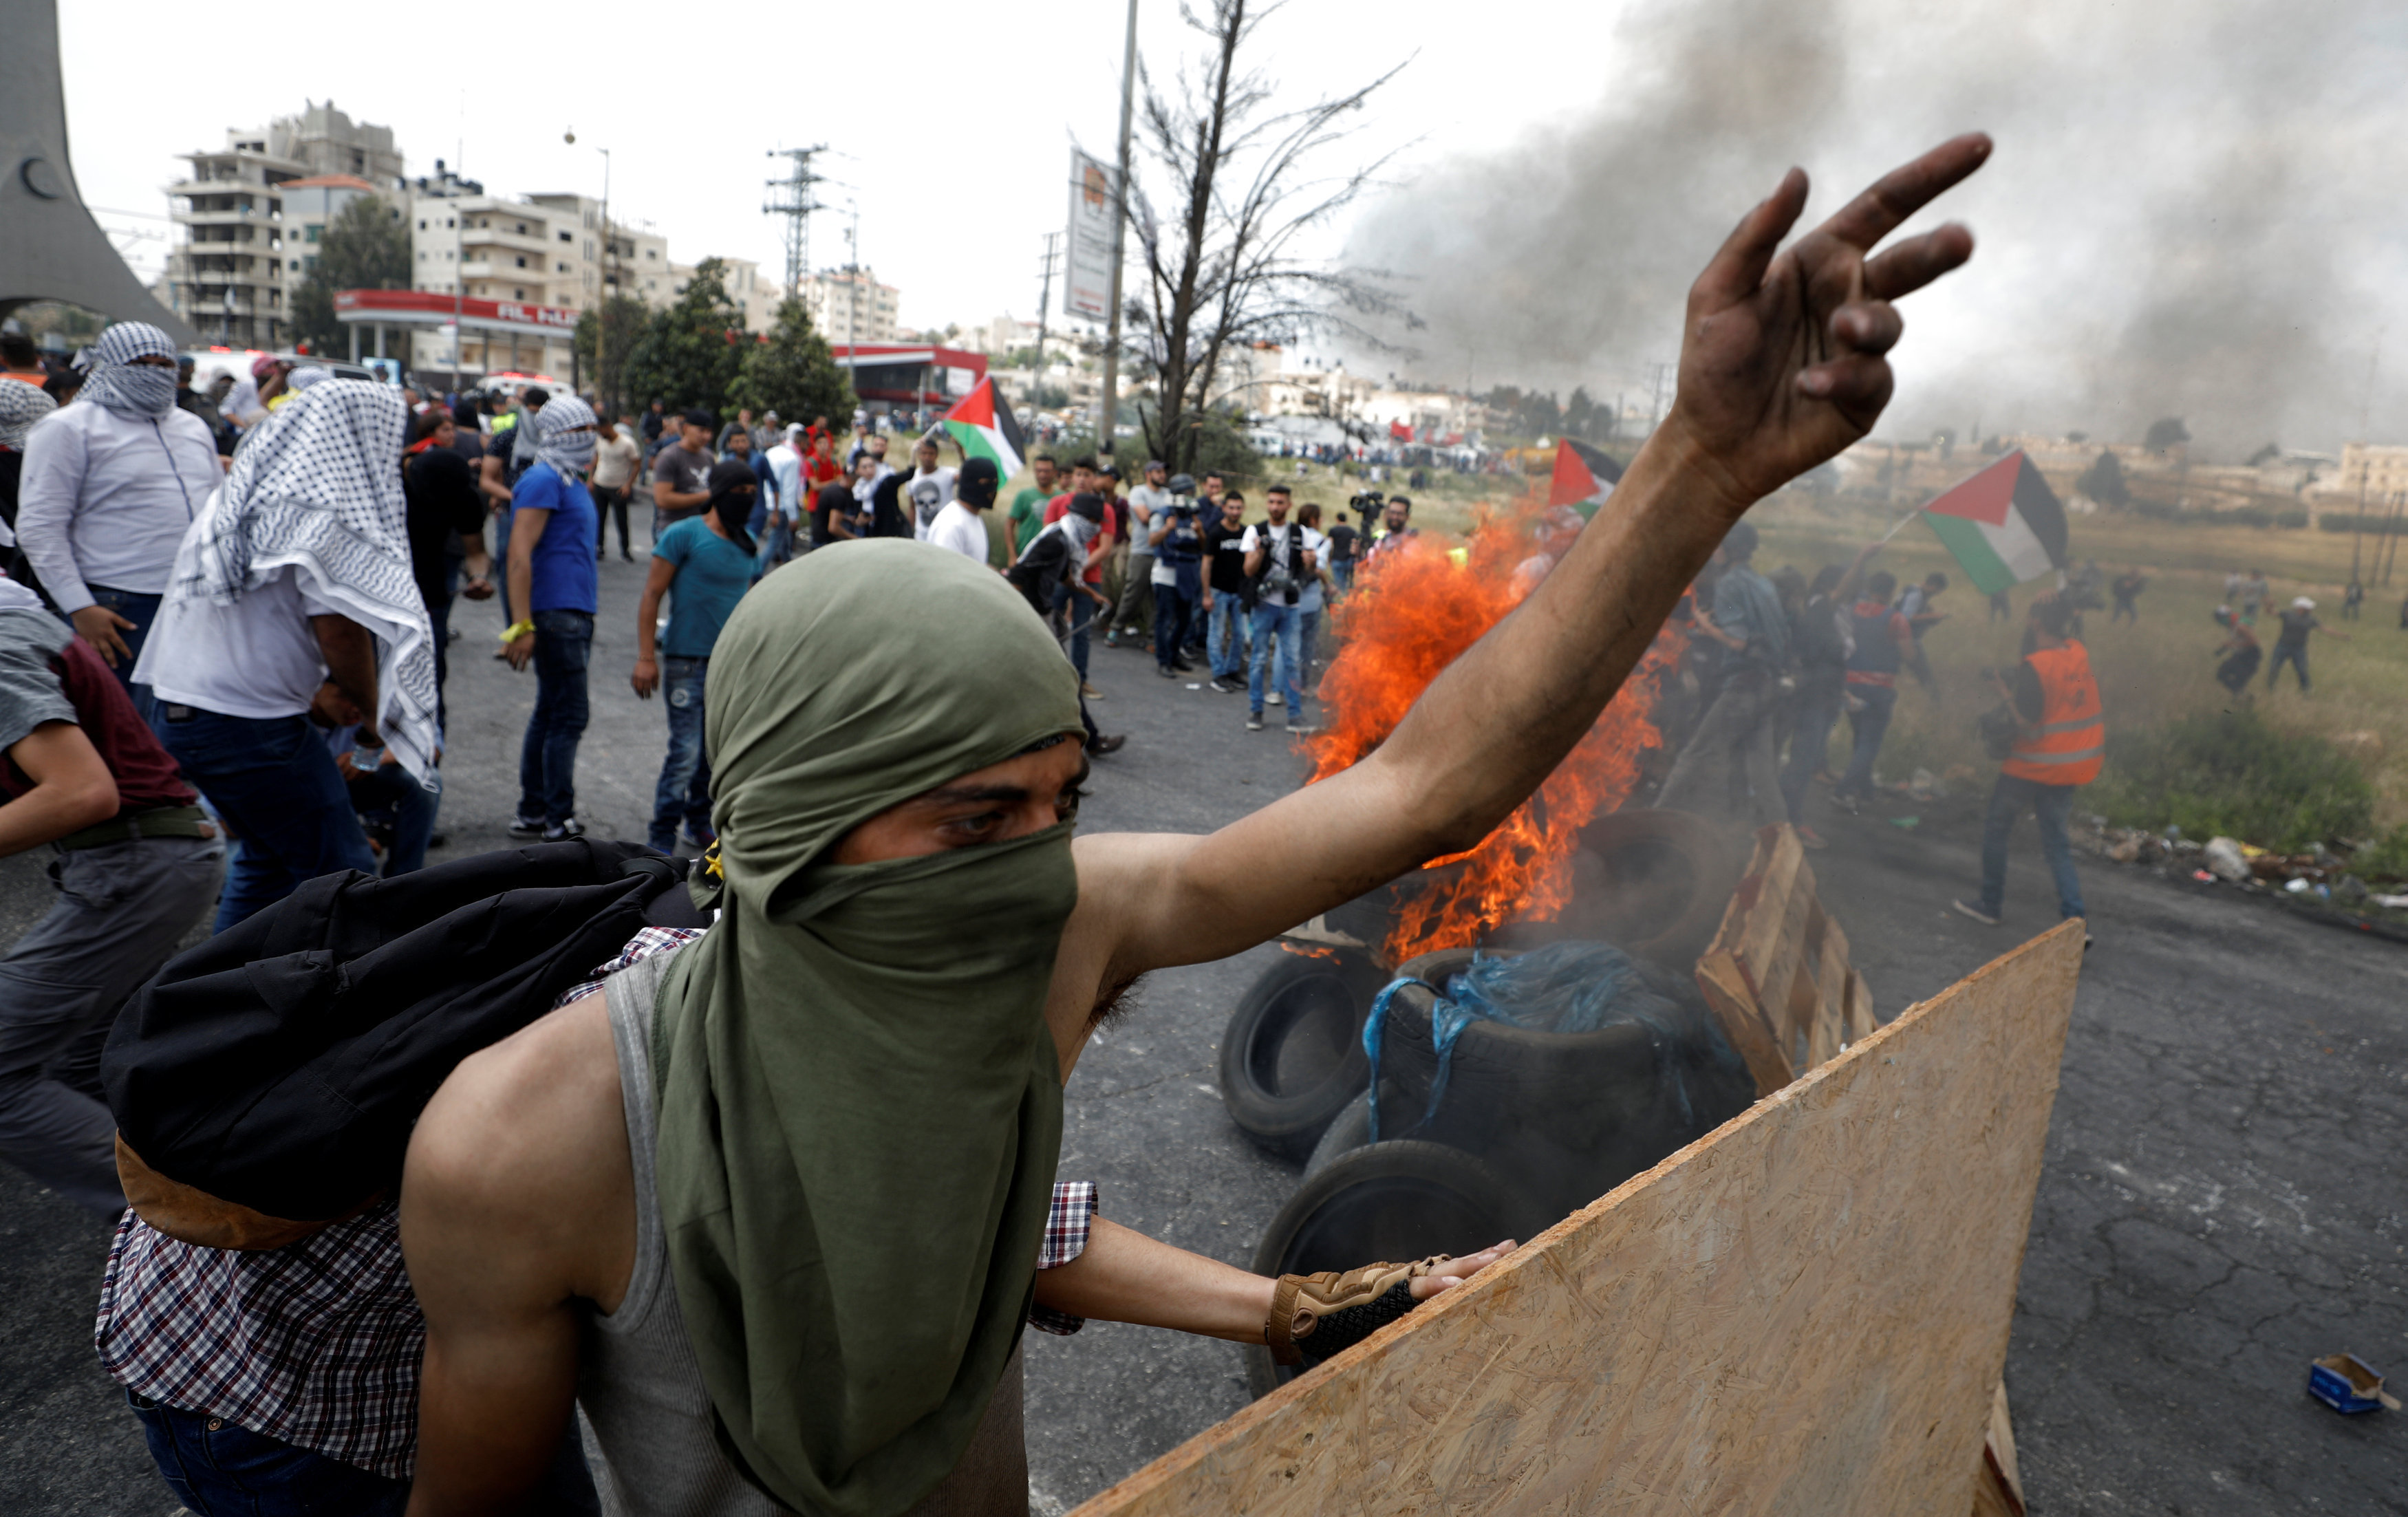 A Palestinian demonstrator gestures during a protest marking the 70th anniversary of Nakba, near the Jewish settlement of Beit El, near Ramallah, in the occupied West Bank May 15, 2018